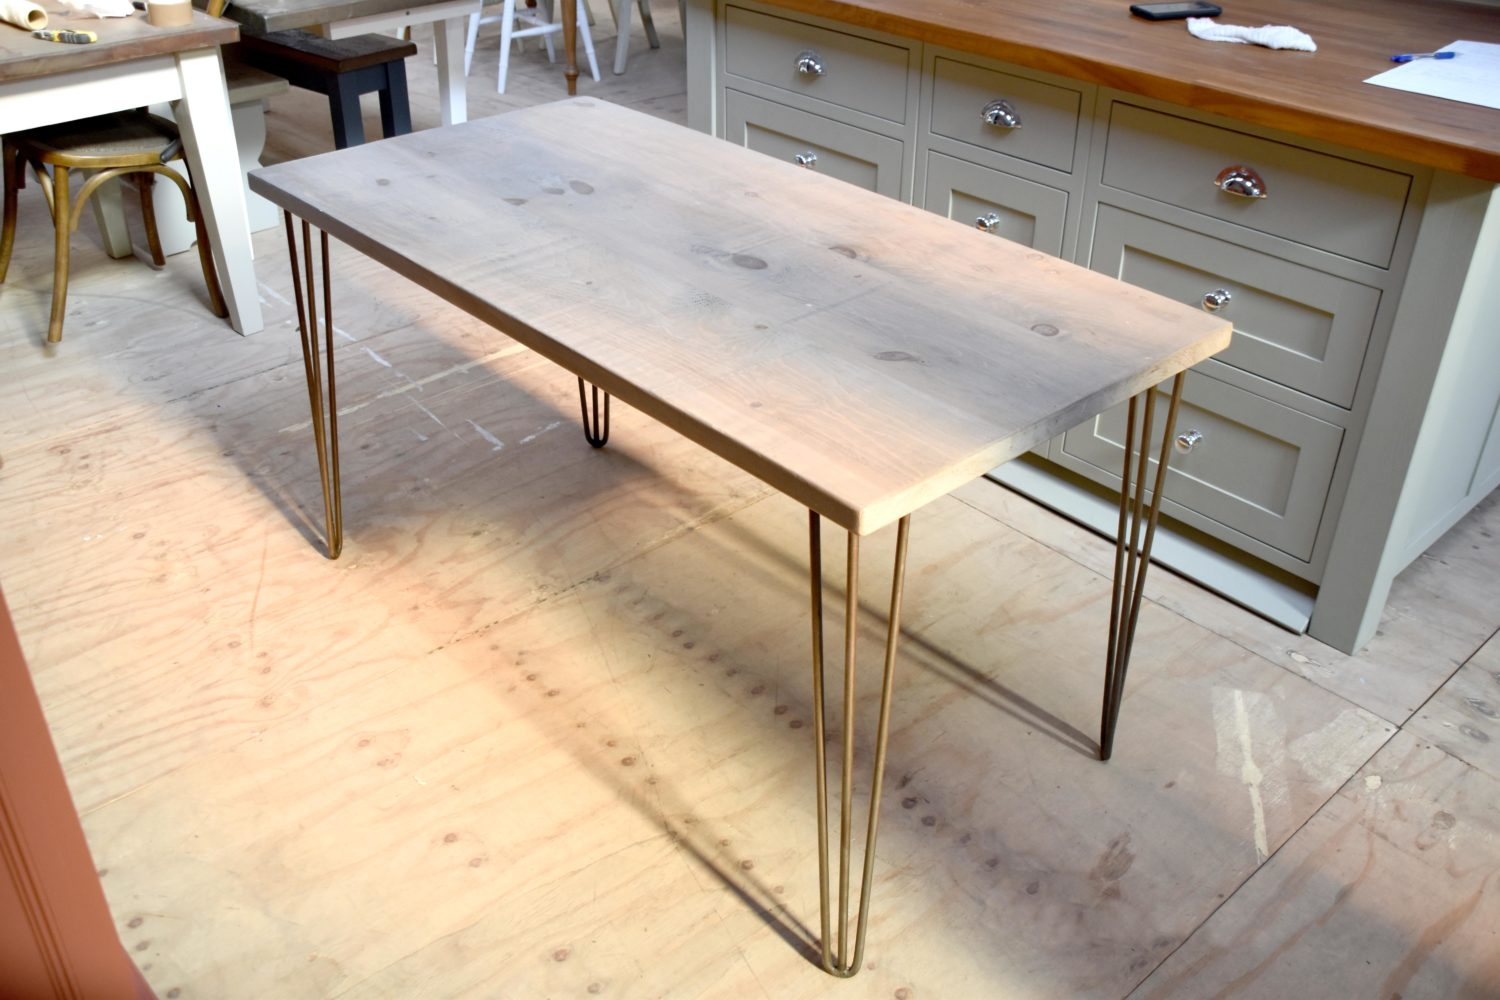 Hairpin legged table in the Mudd & Co factory sale 2020. Handcrafted kitchen and home furniture